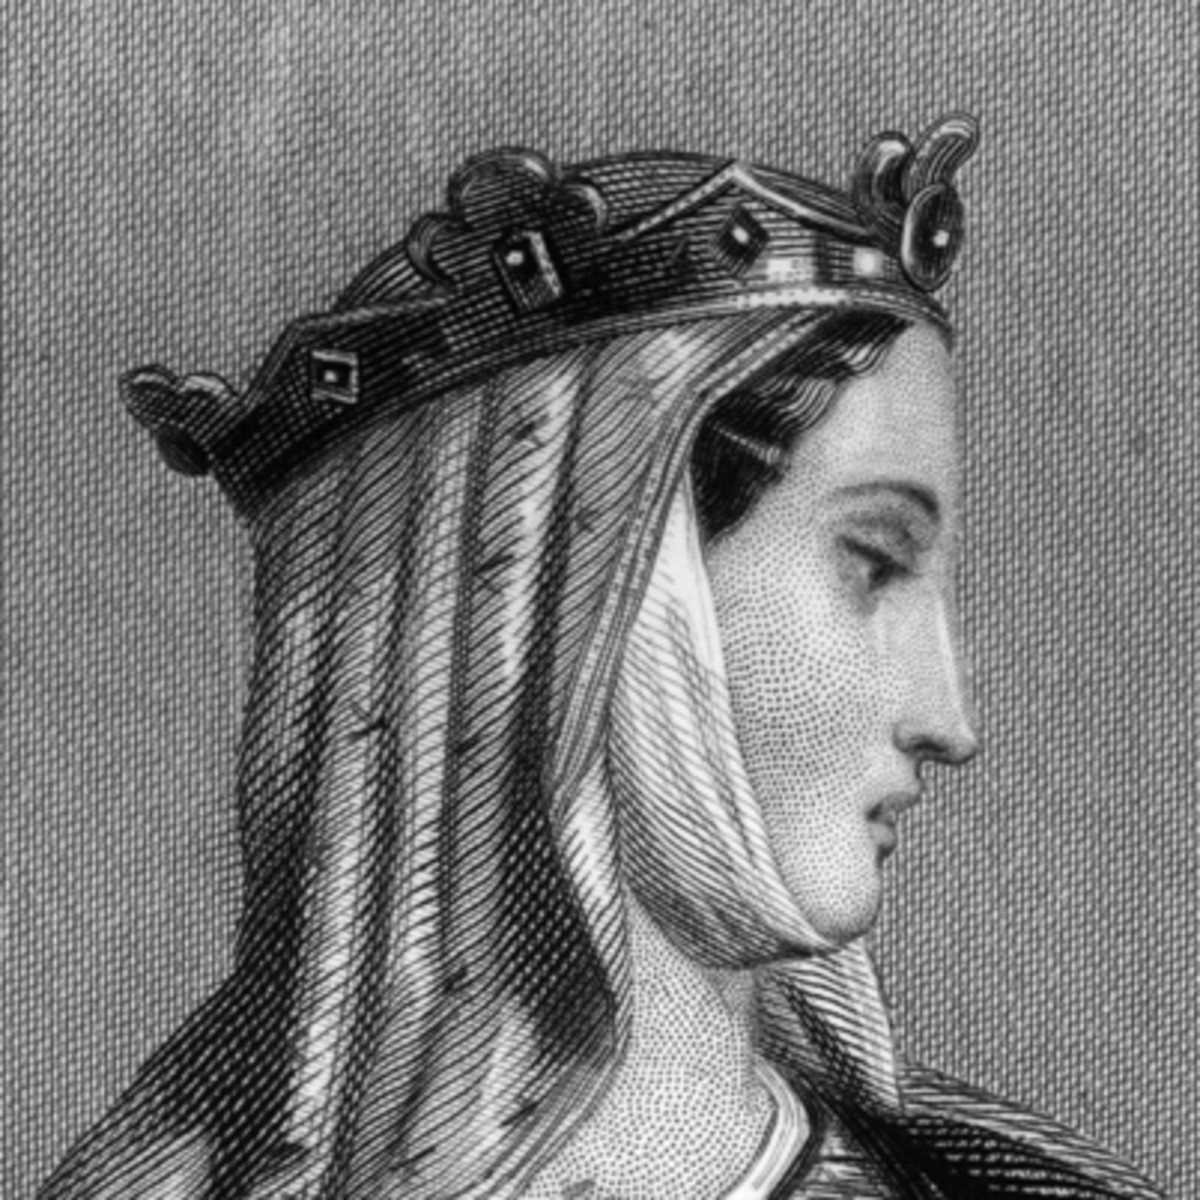 the life of eleanor of aquitaine Eleanor of aquitaine: a medieval matriarch sean okeeffe share tweet queen elizabeth i as the wife of king henry ii of england, eleanor of aquitaine subsequently became queen of england in 1152 however i believe it perfectly sums up the life of eleanor of aquitaine.